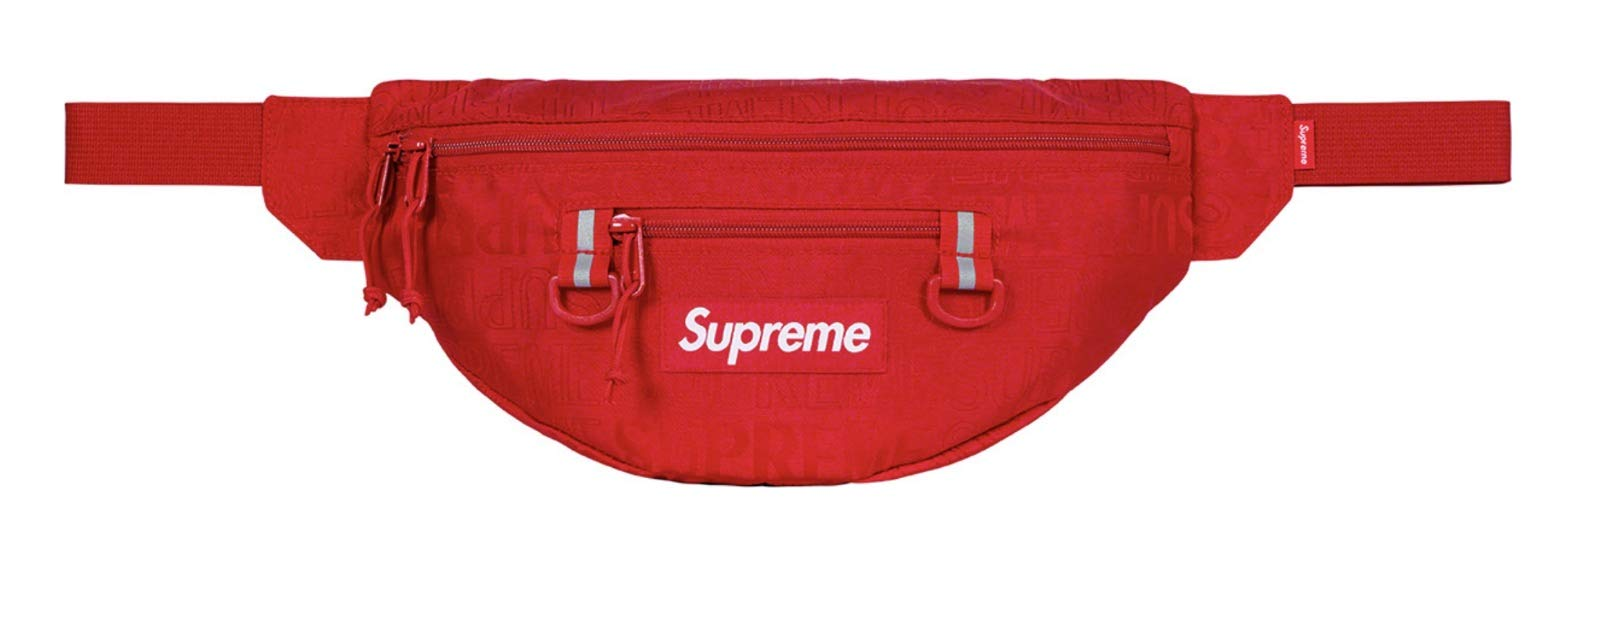 Supreme Waist Bag Fanny Pack Red SS19 Brand New 100% Authentic Real Designer Rare